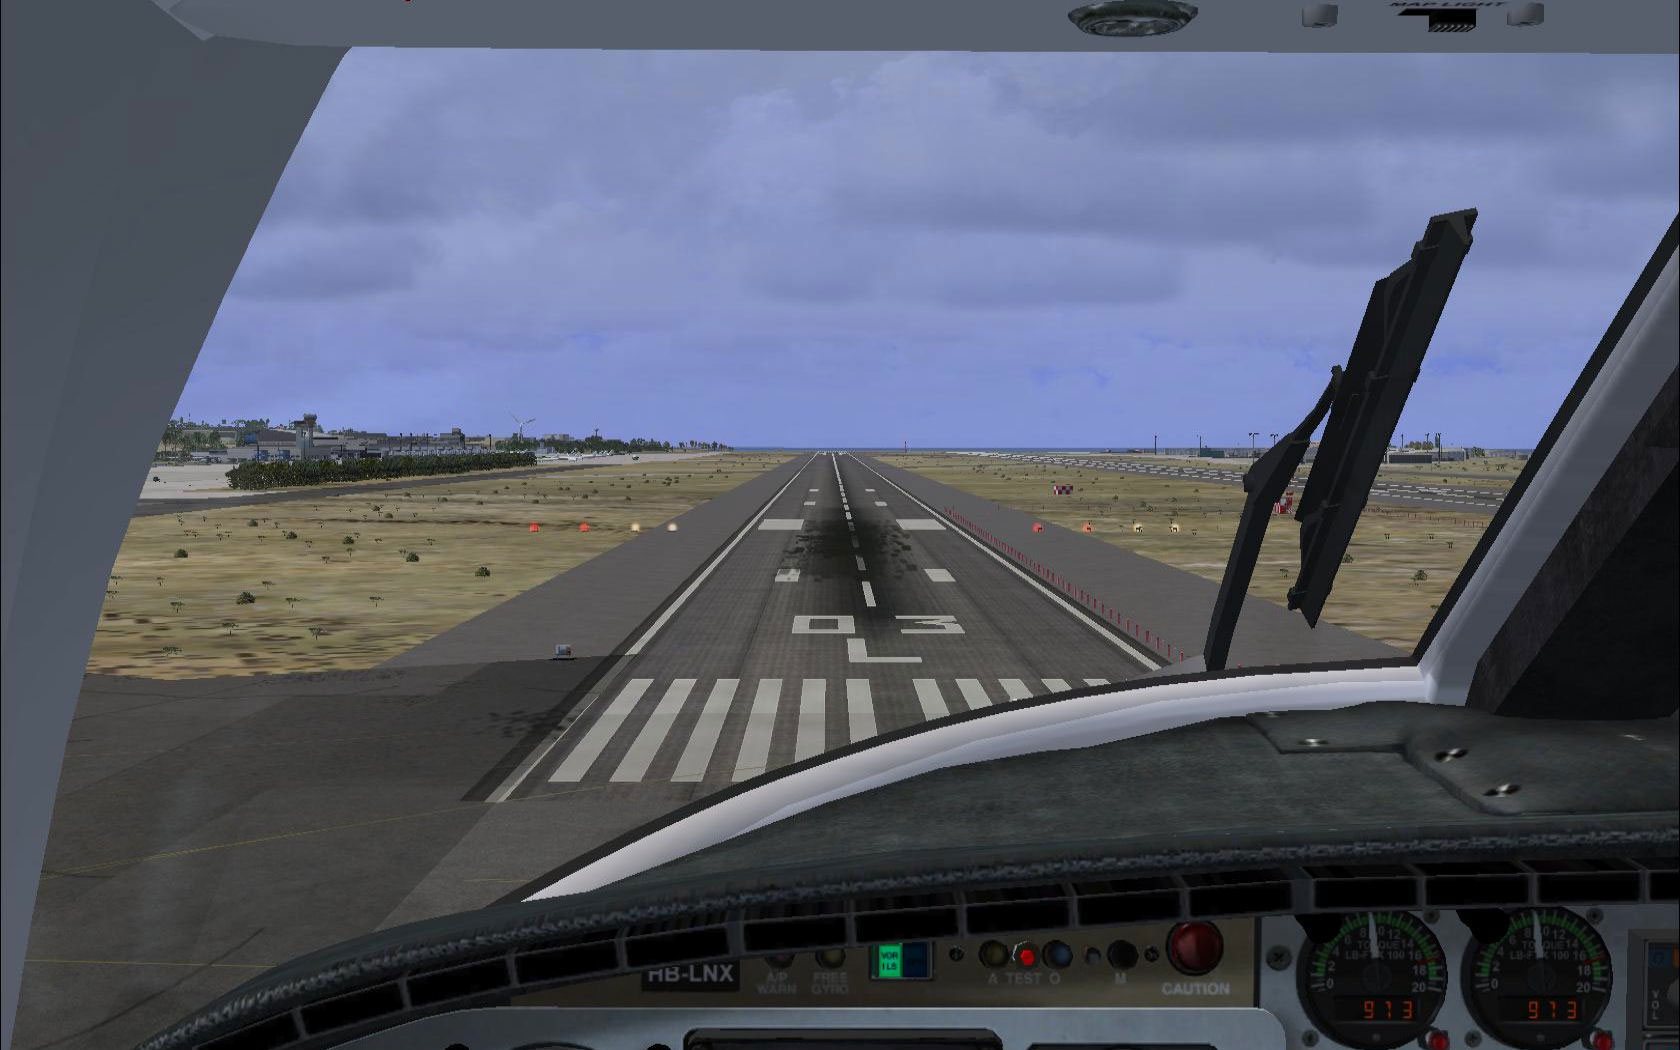 gran canaria airport  gclp  scenery for fsx by fly